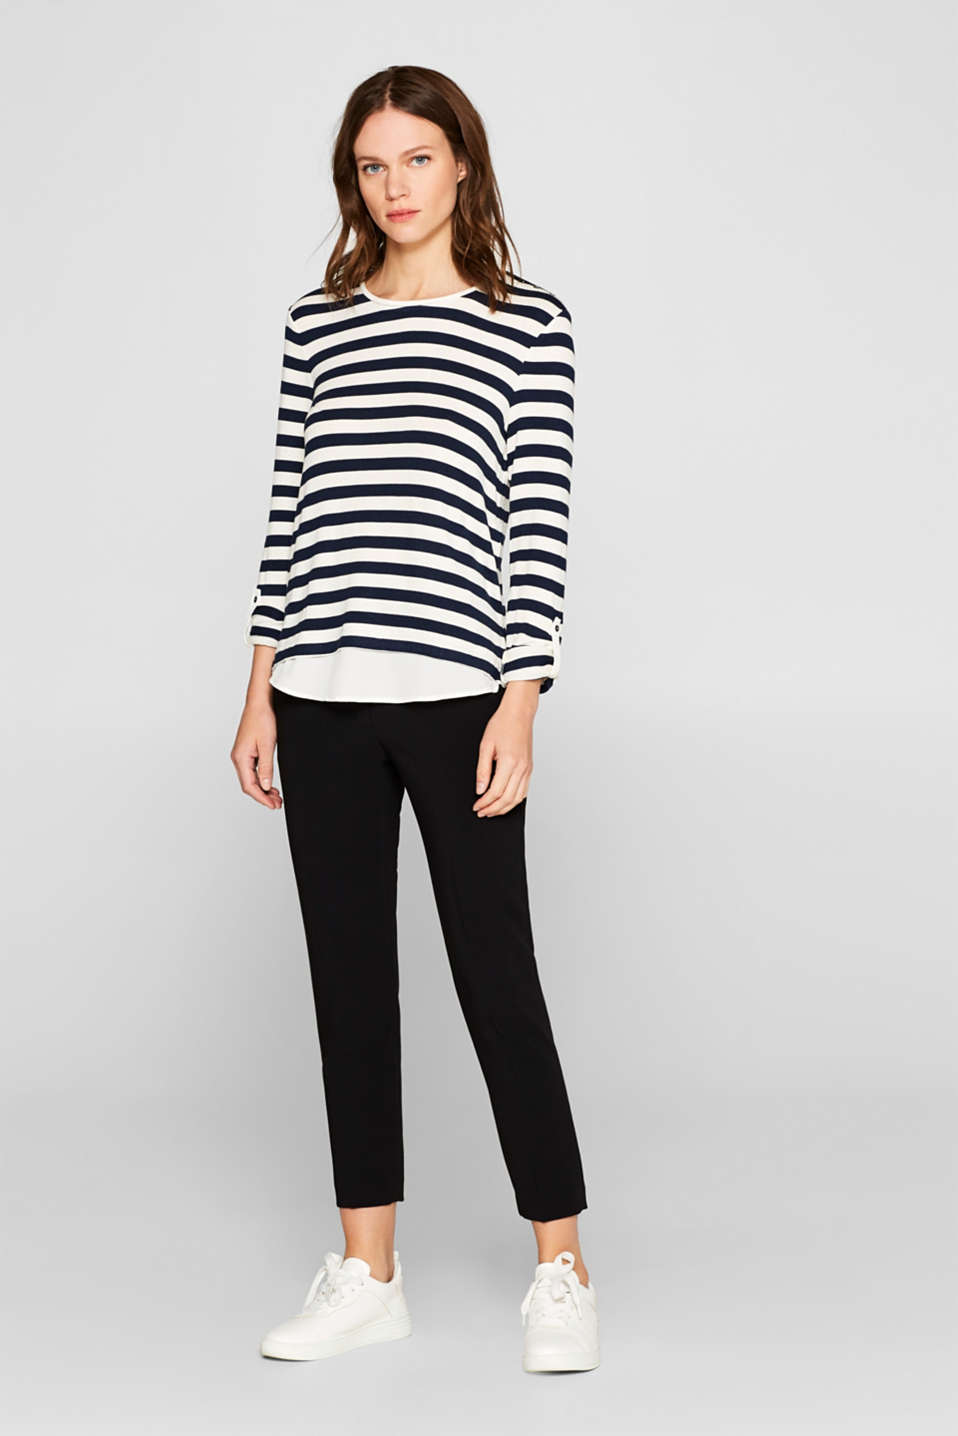 Striped stretch top in a layered look, NAVY, detail image number 1